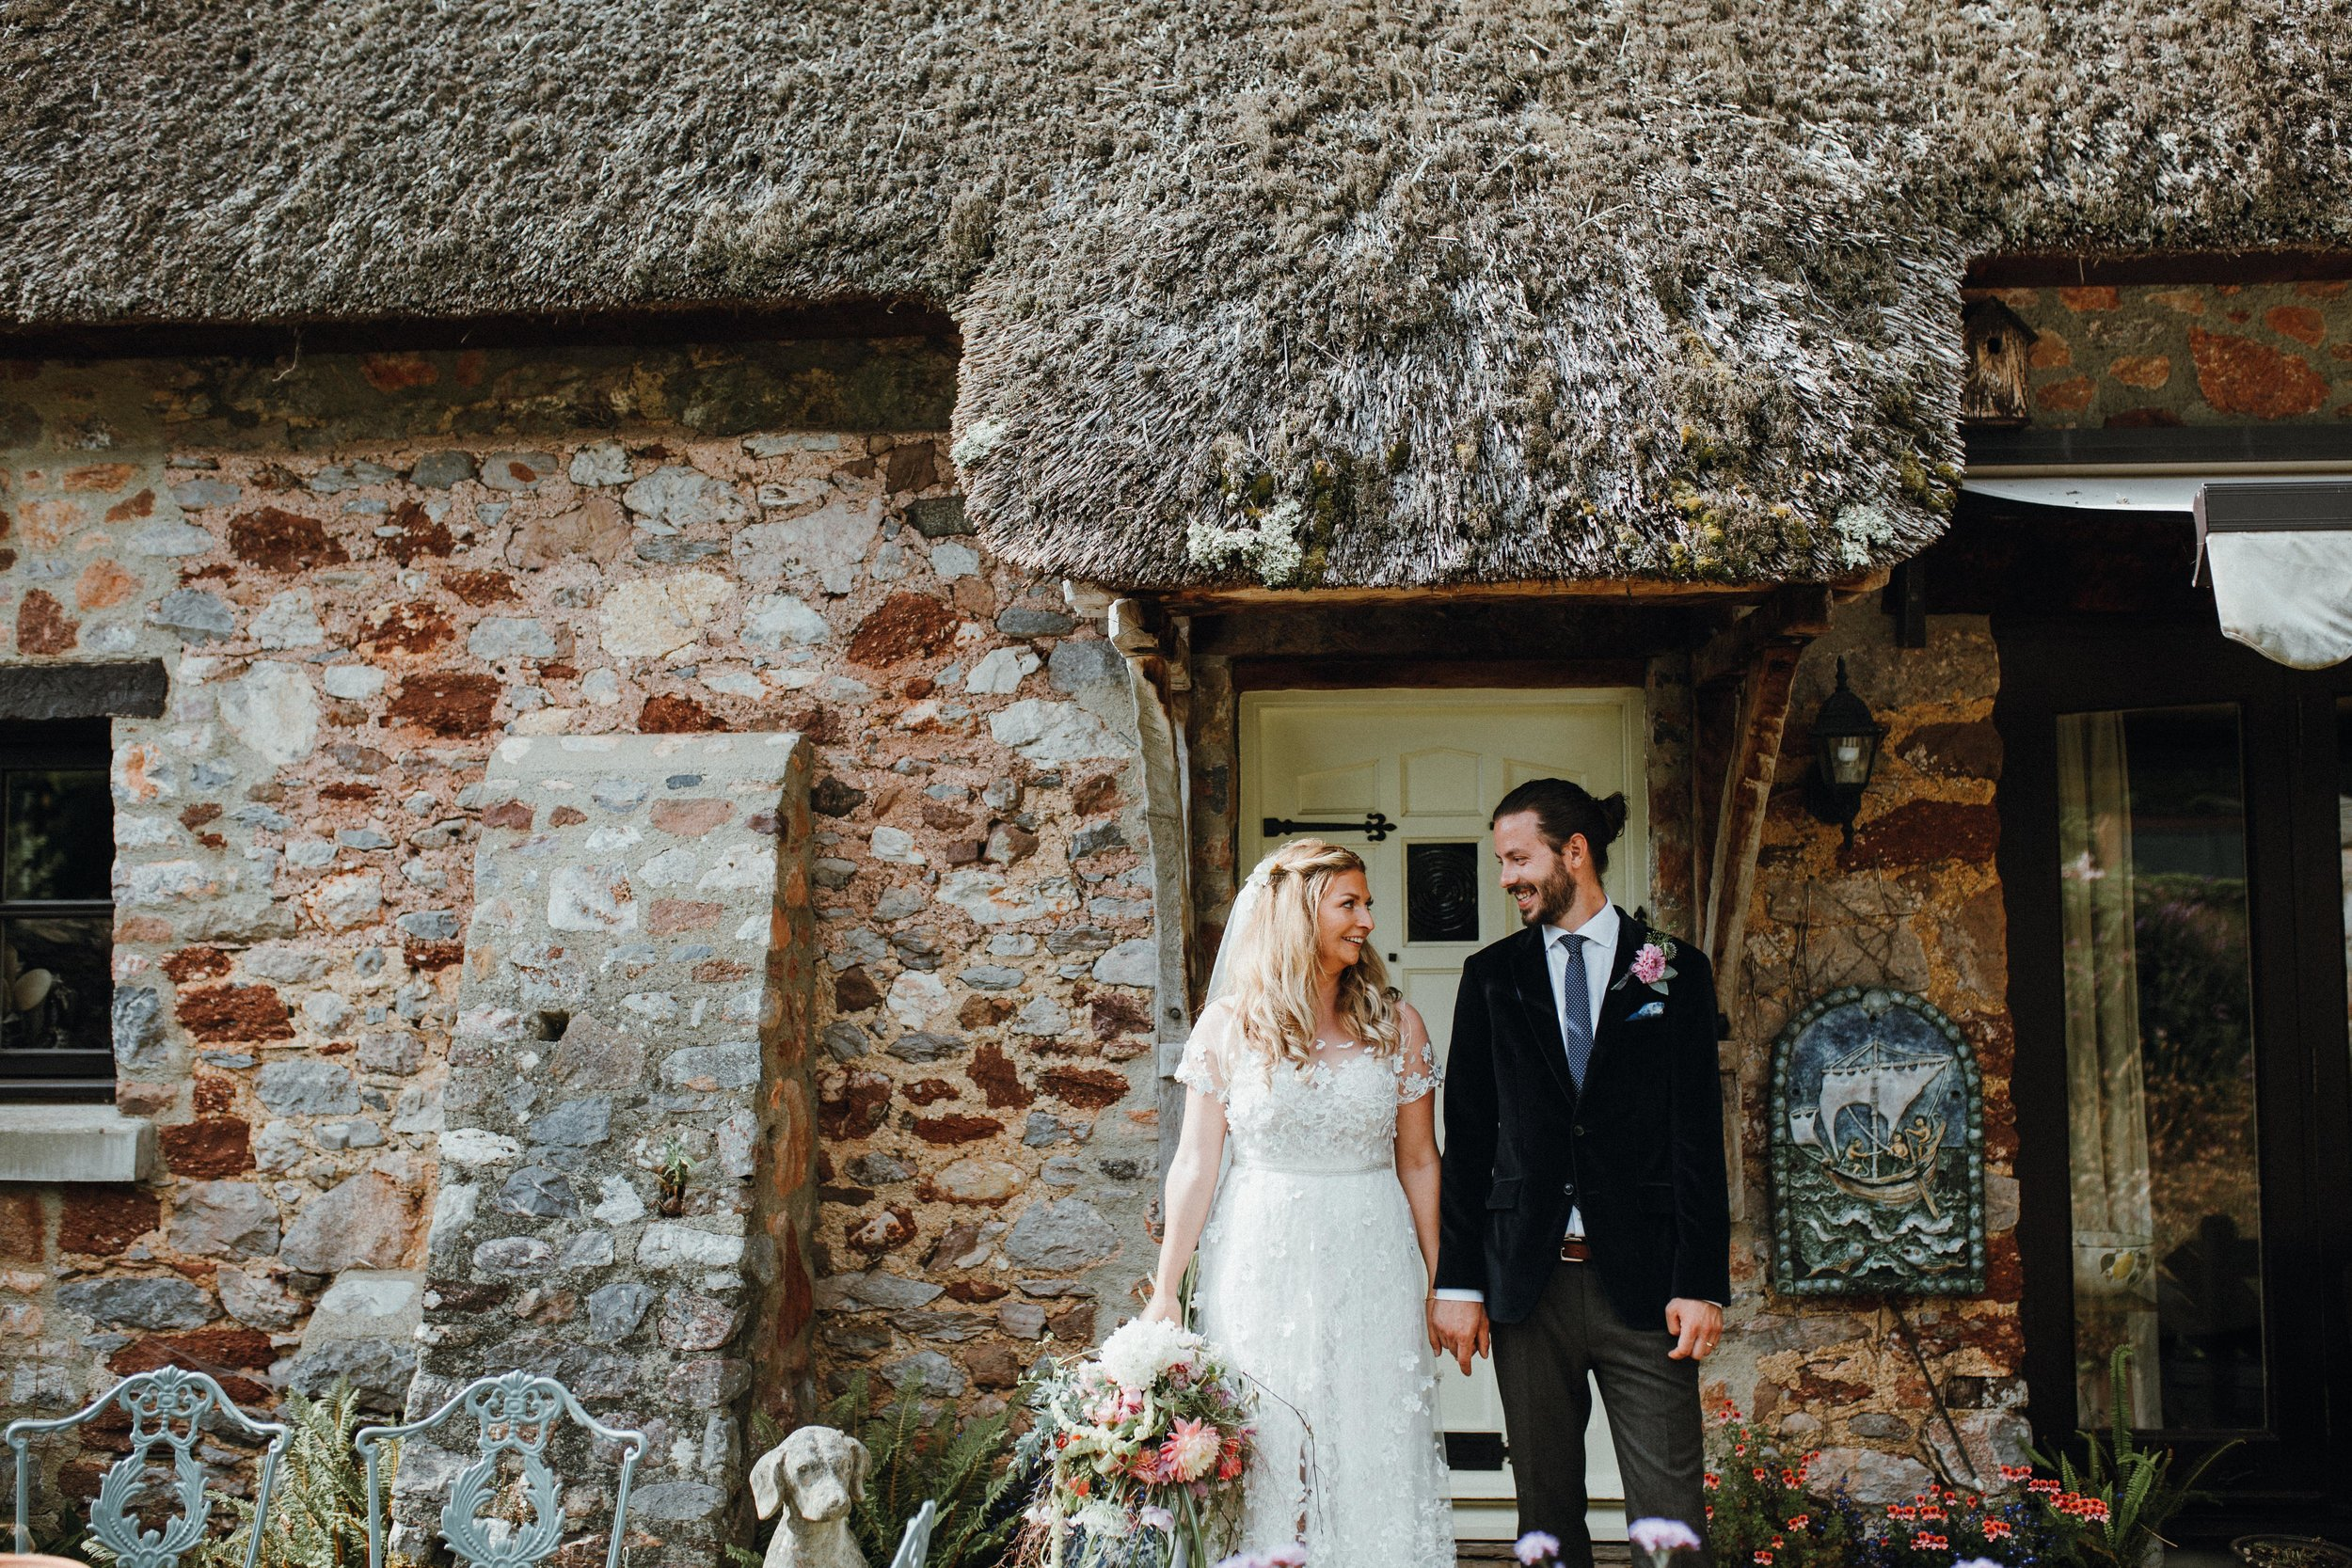 Sophie + Max, Devon - Thank you SO much - we are totally blown away by the photos and the film, you have managed to capture the magic of our day so perfectly and we couldn't be more grateful. We will show and tell ALL our friends how wonderfully talented you are.